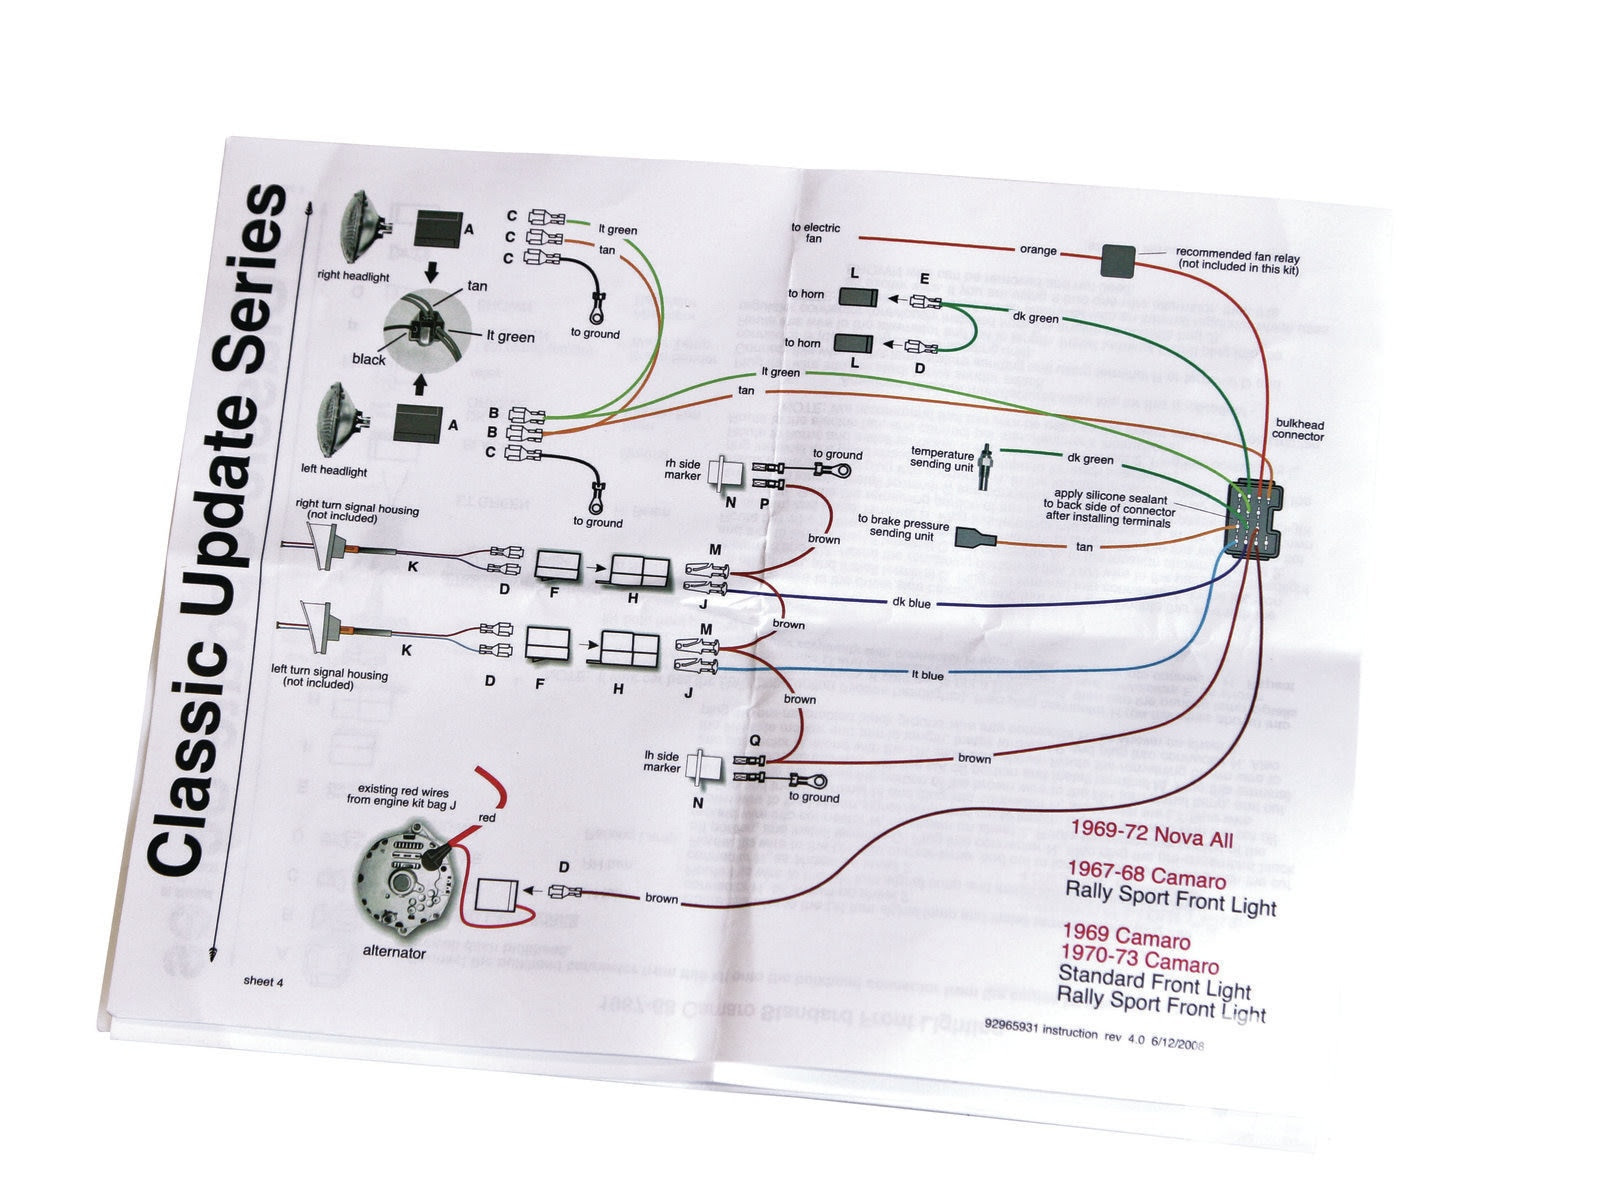 Diagram 67 Camaro American Autowire Wiring Diagram Full Version Hd Quality Wiring Diagram Skematik110isi Gsdportotorres It